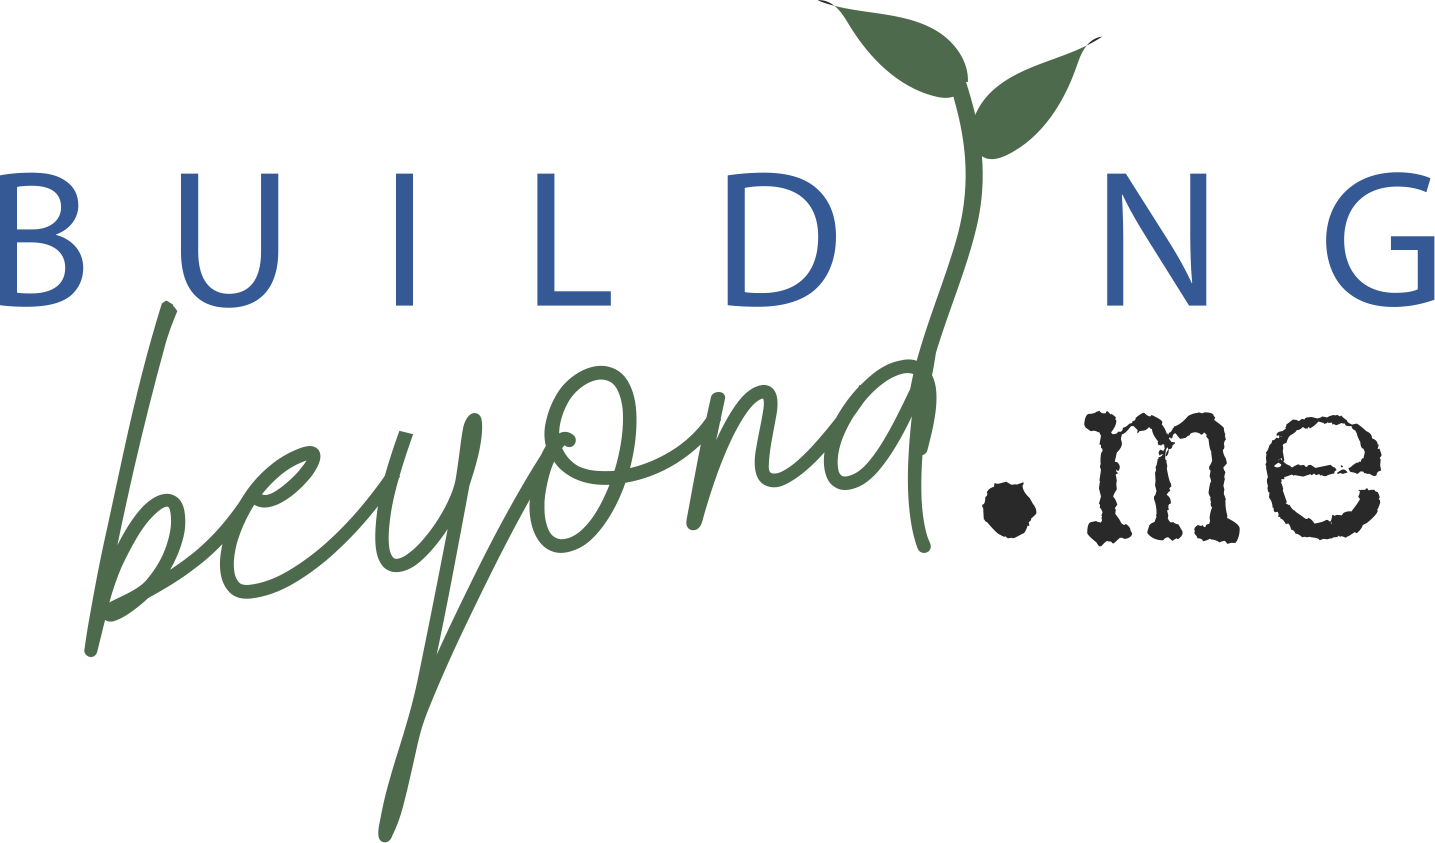 www.BuildingBeyond.me  - Building Beyond Me is a 501(c)3 non-profit committed to building safe, loving, and helpful communities.